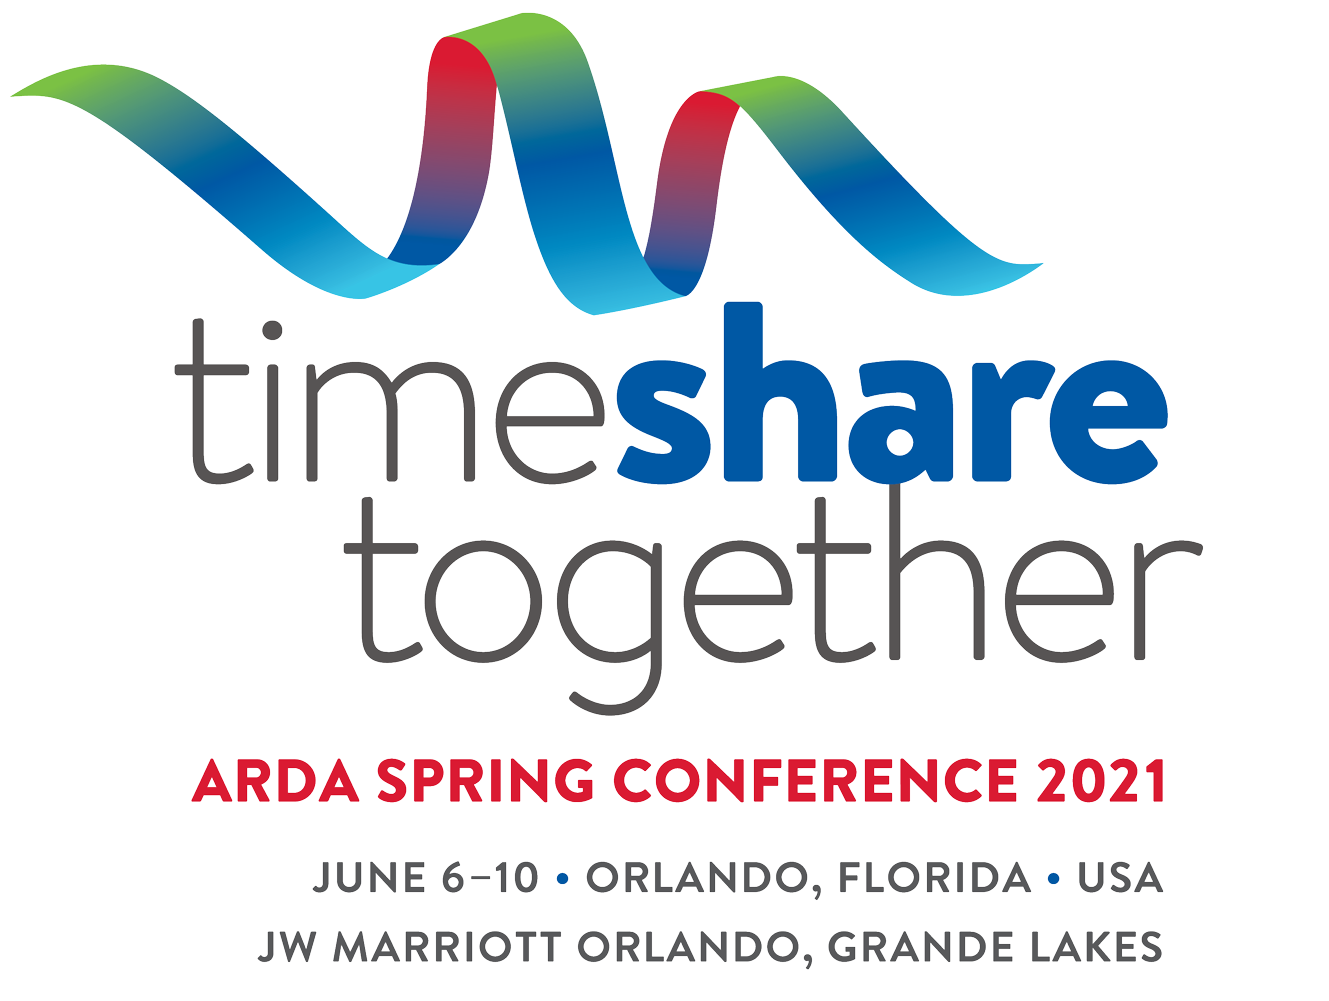 timeshare together info logo